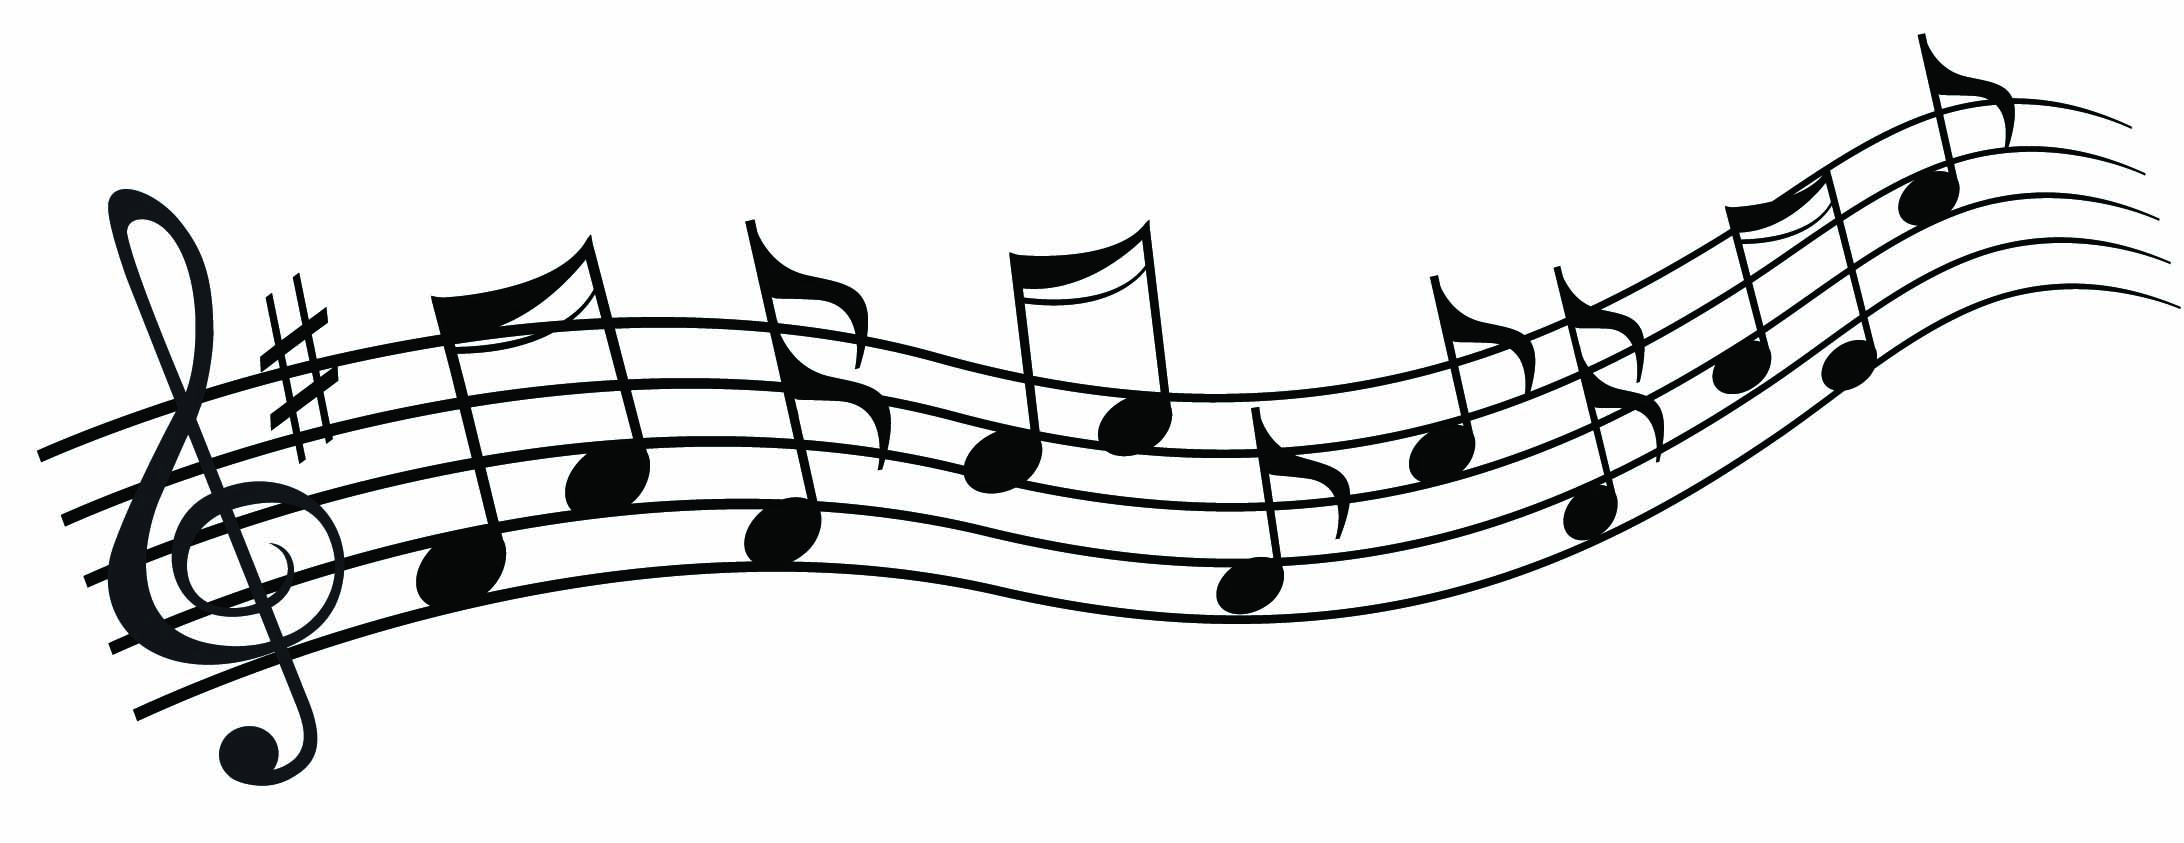 2184x843 Music Clipart Black And White